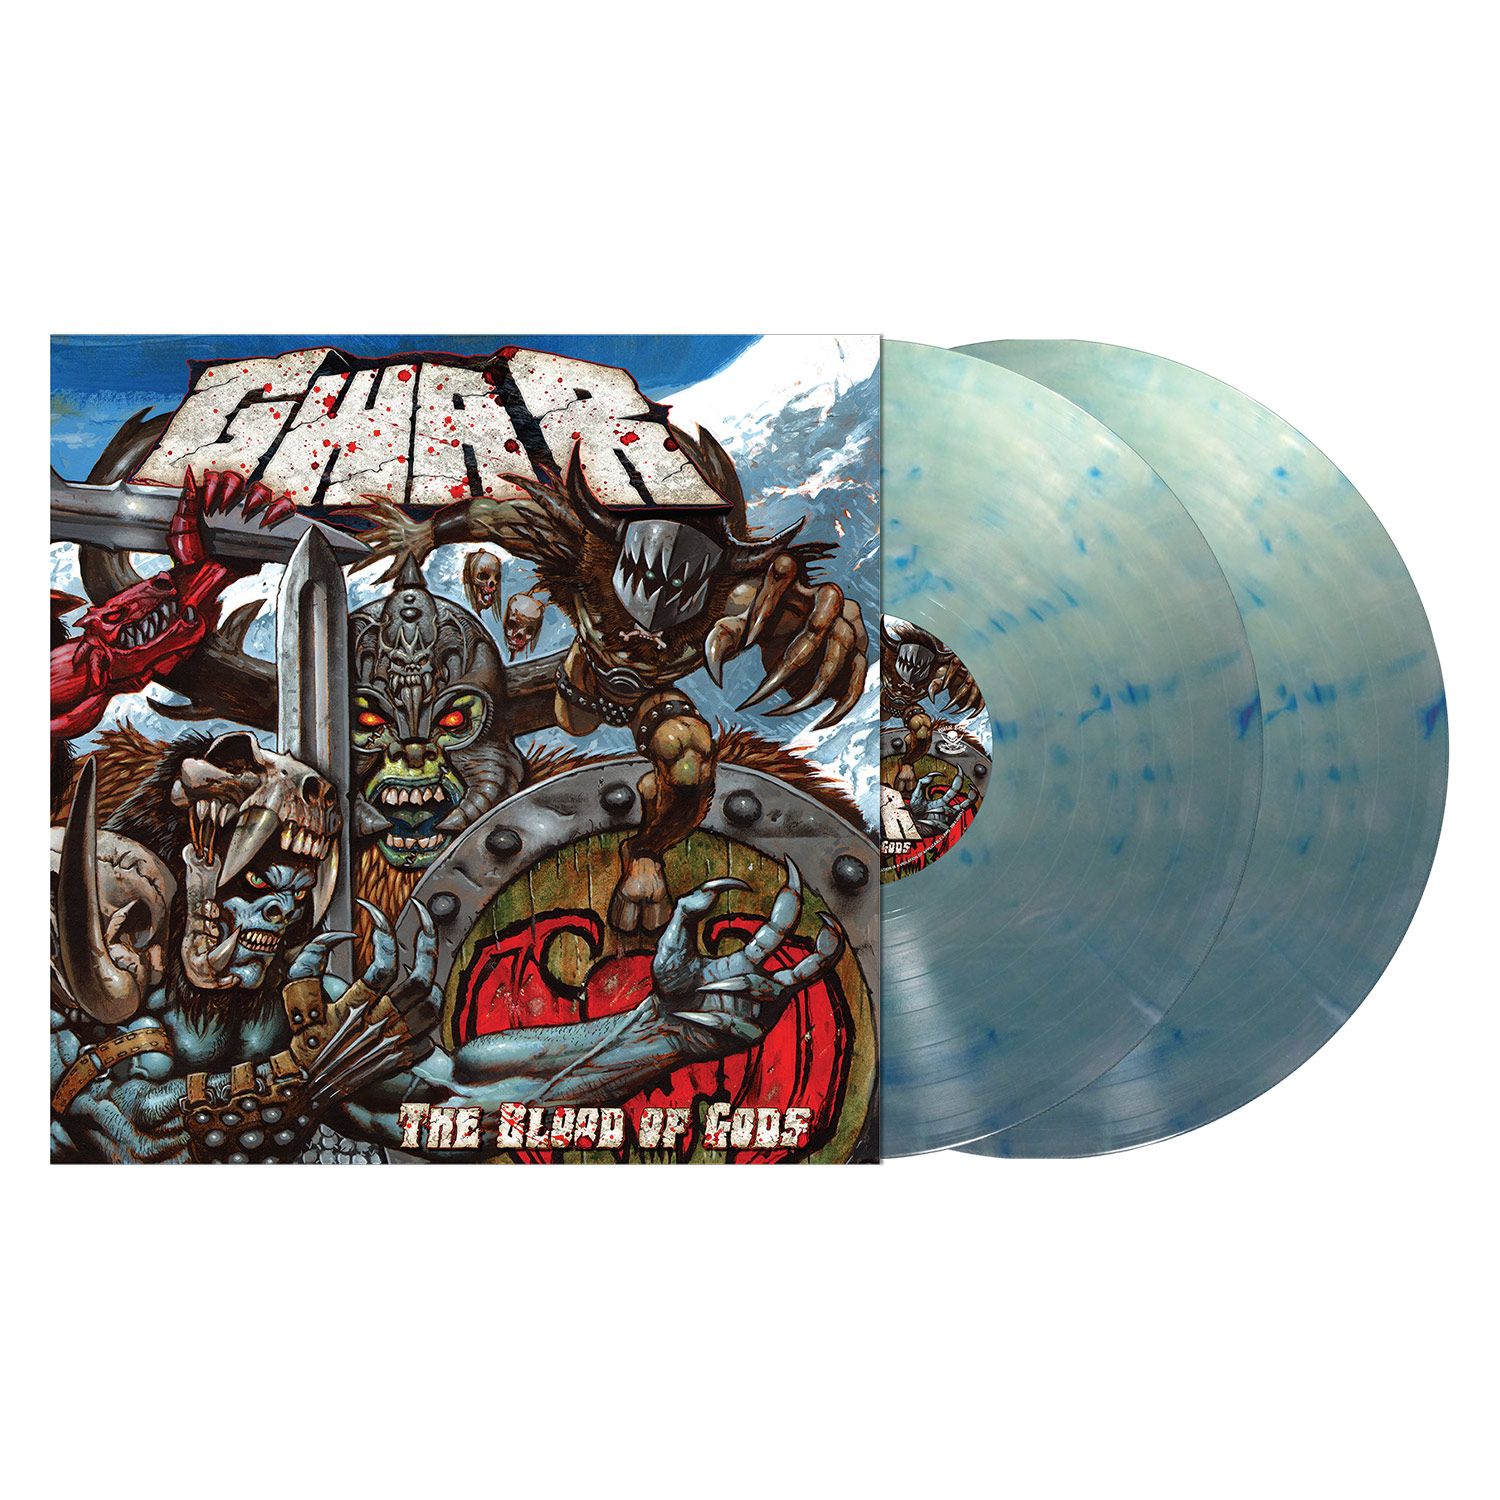 The Blood of Gods - CD/LP Bundle